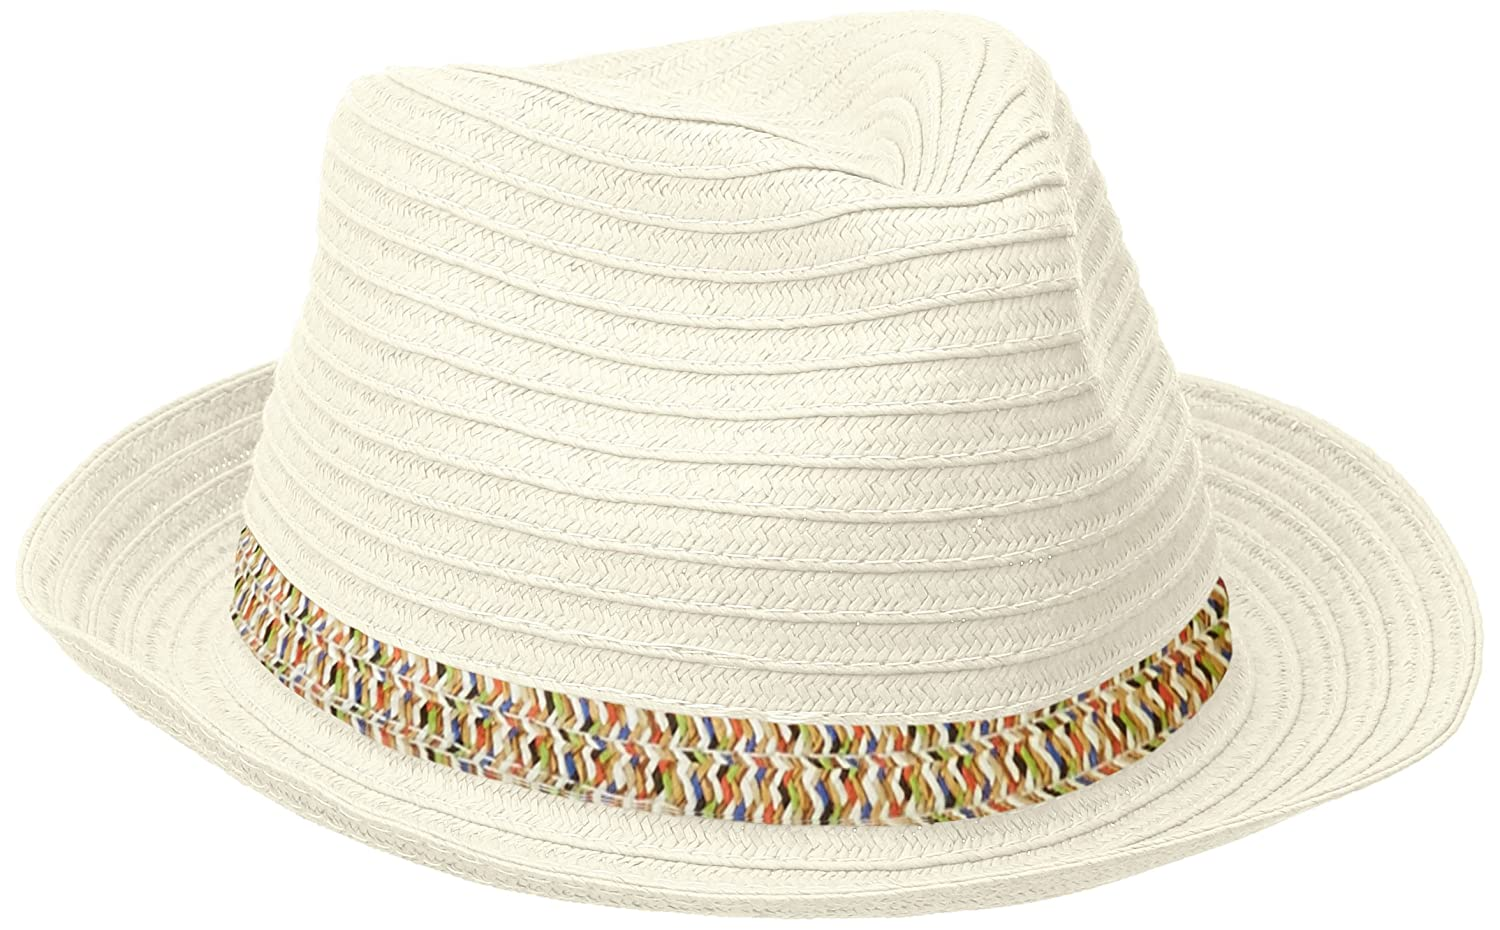 San Diego Hat Company Women's Panama Hat with Contrast Inset Ivory One Size pbf7301